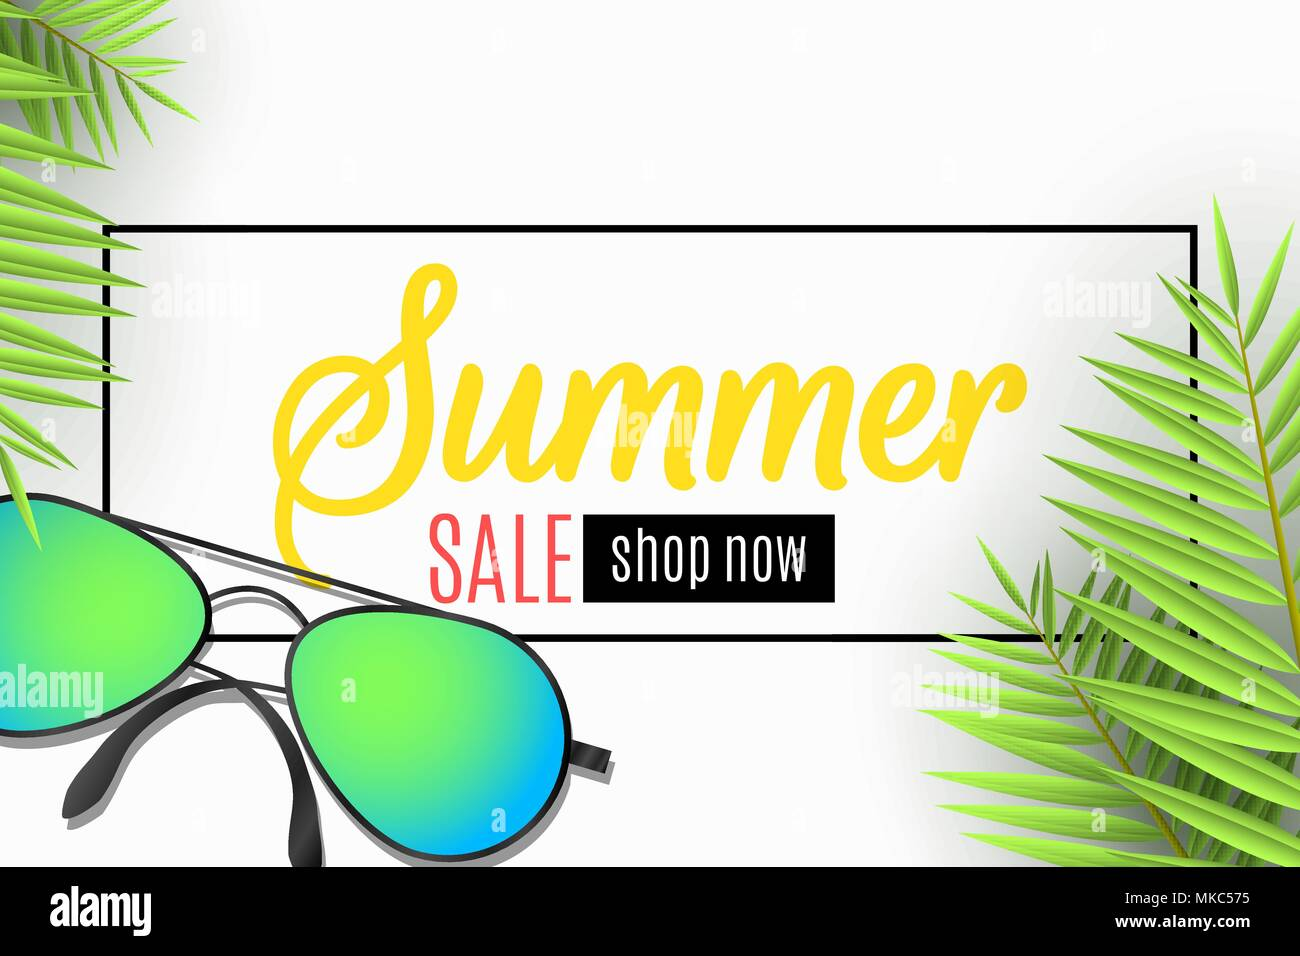 6db6c229afaa Advertising web banner for the Summer Sale. Sunglasses and palm leaves on a  white background